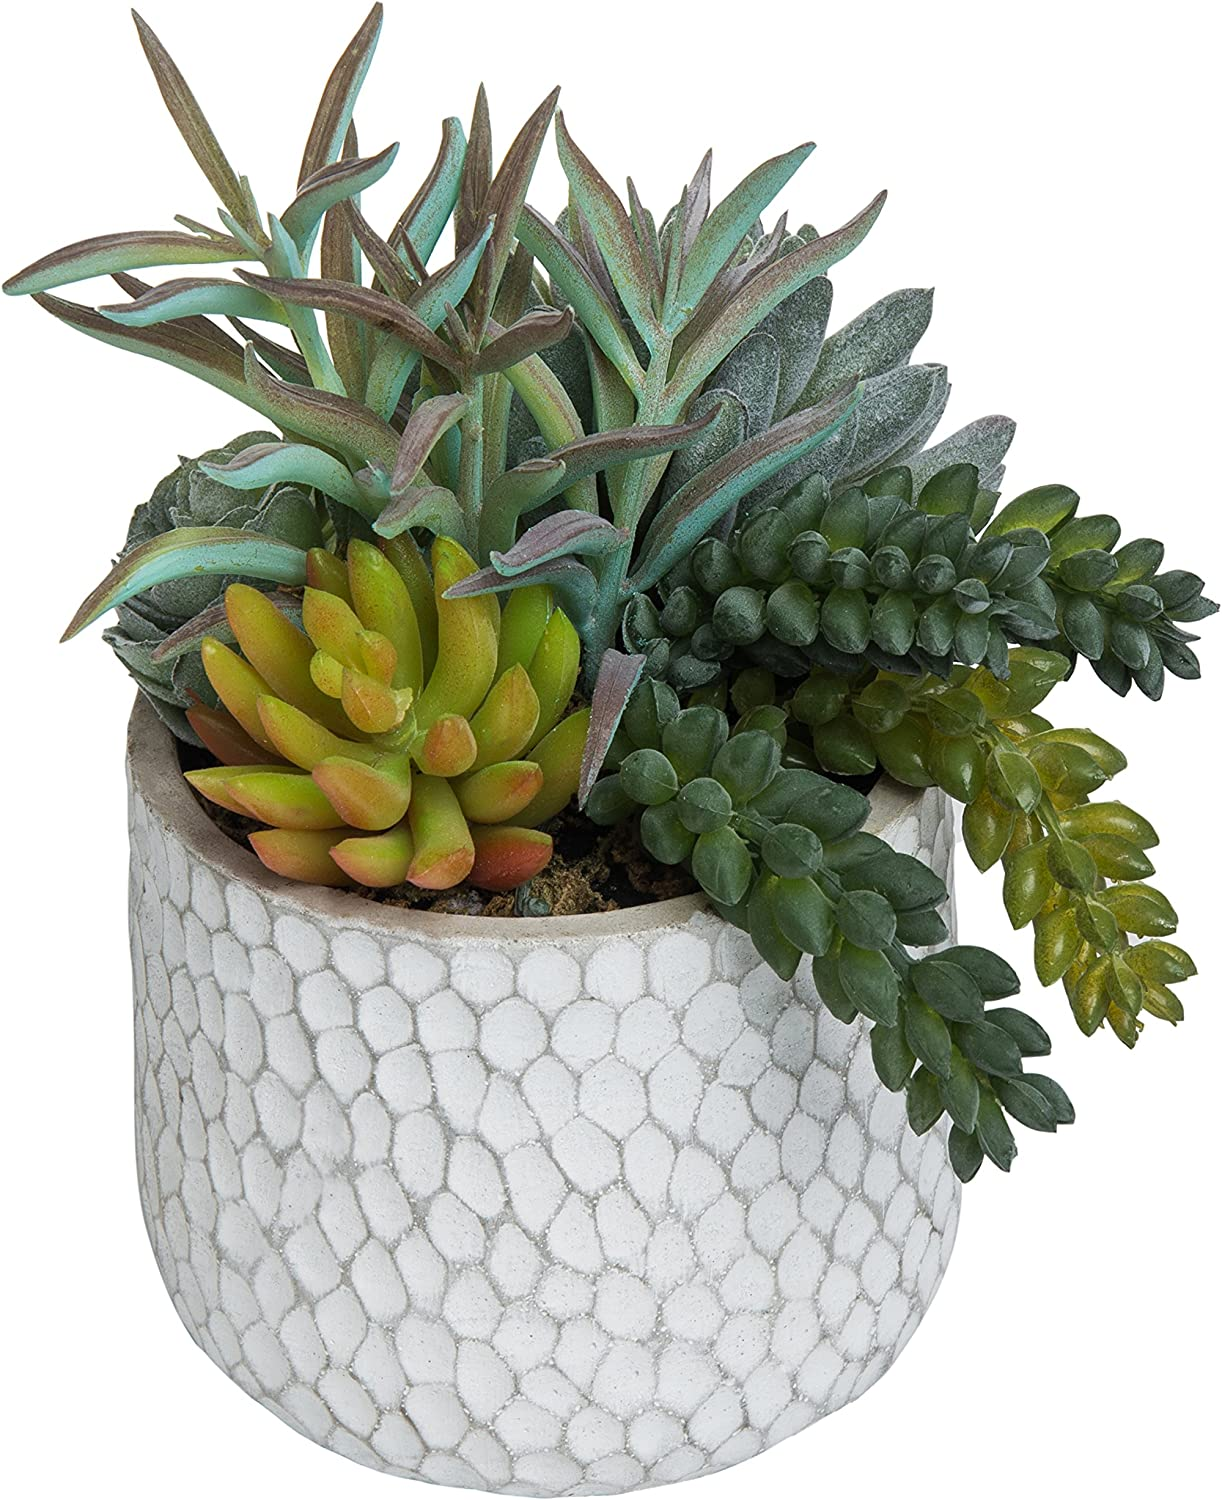 MyGift 8-Inch Artificial Succulent Plant Arrangement in Dimpled Clay Planter